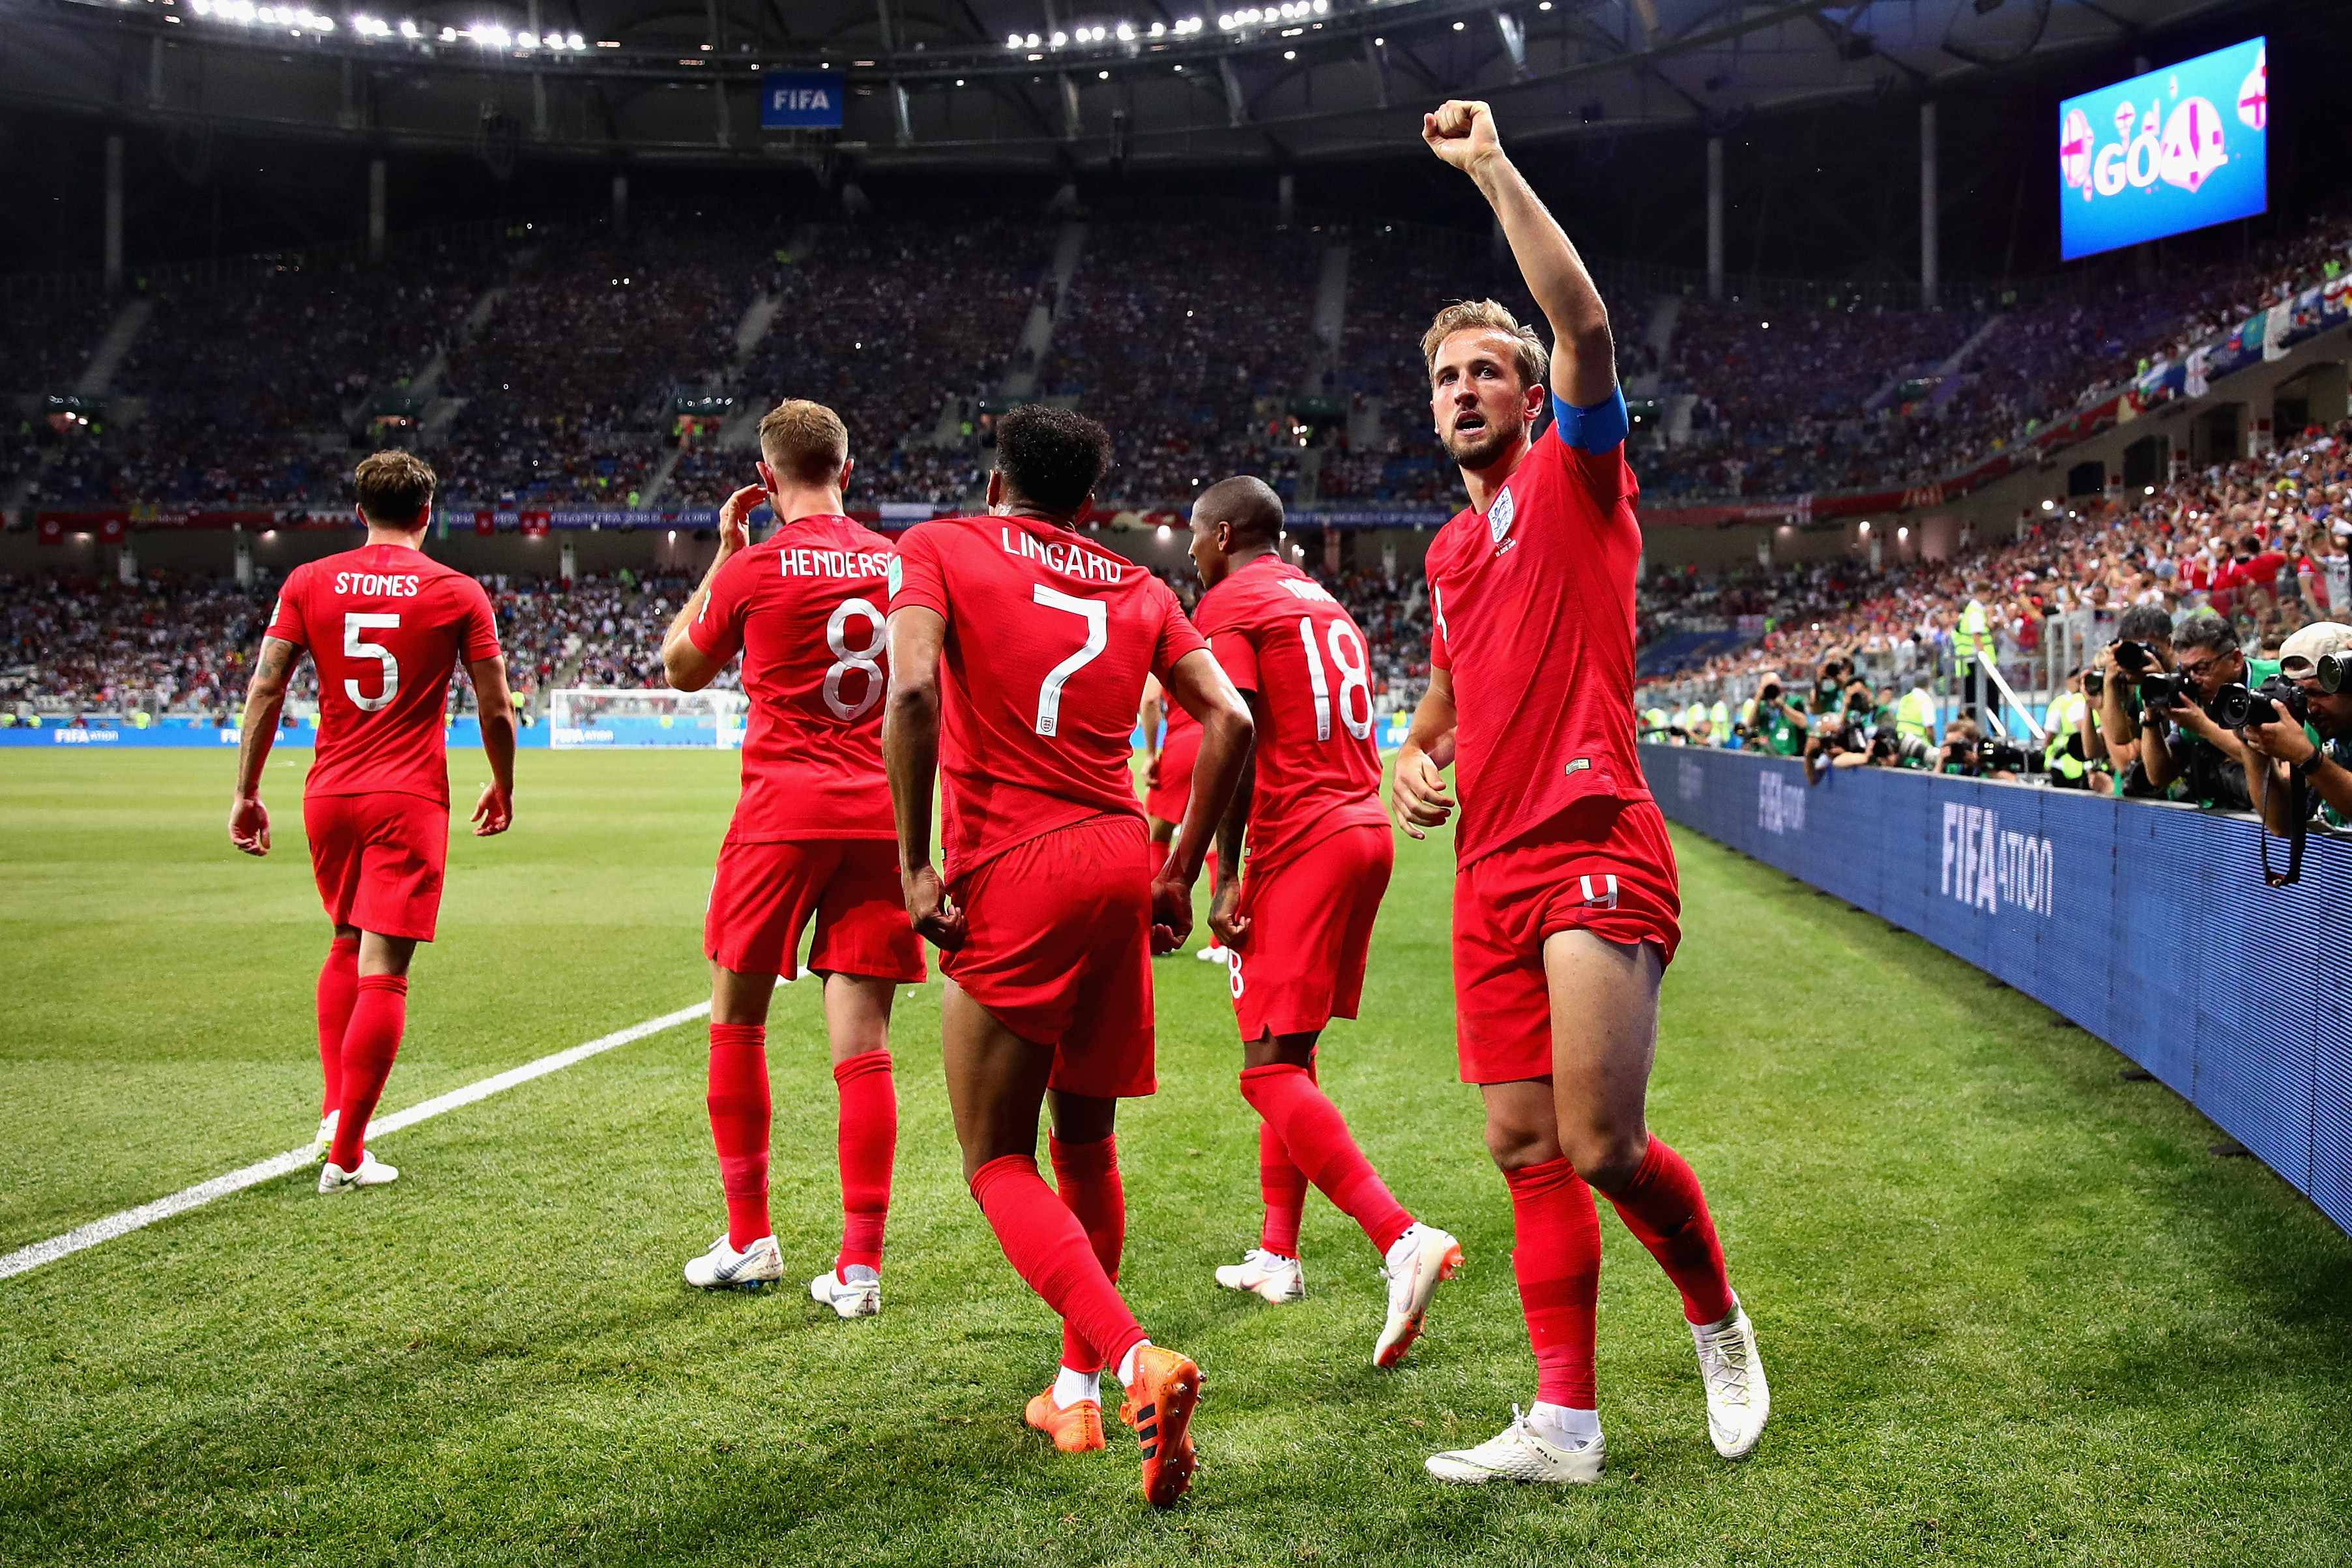 VOLGOGRAD, RUSSIA - JUNE 18:  Harry Kane of England celebrates after scoring his sides second goal during the 2018 FIFA World Cup Russia group G match between Tunisia and England at Volgograd Arena on June 18, 2018 in Volgograd, Russia.  (Photo by Chris Brunskill/Fantasista/Getty Images) TL